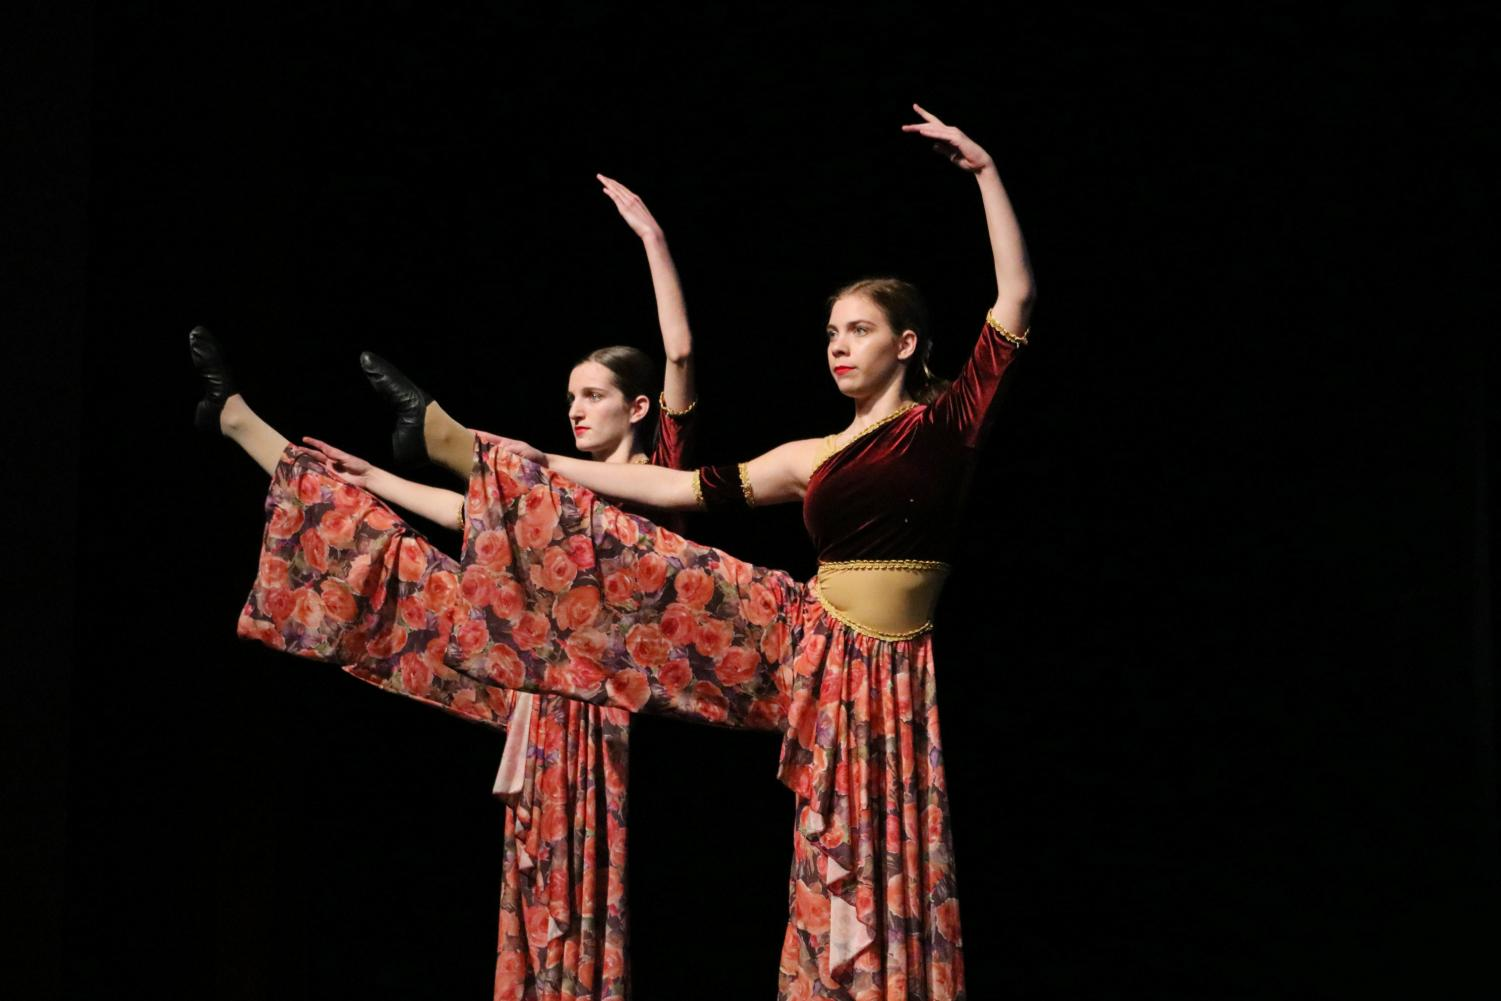 Carol+of+the+Bells+was+choreographed+by+Madison+Rose+and+Amari+Tate.+The+costumes+were+designed+by+Tonya+Stauffer